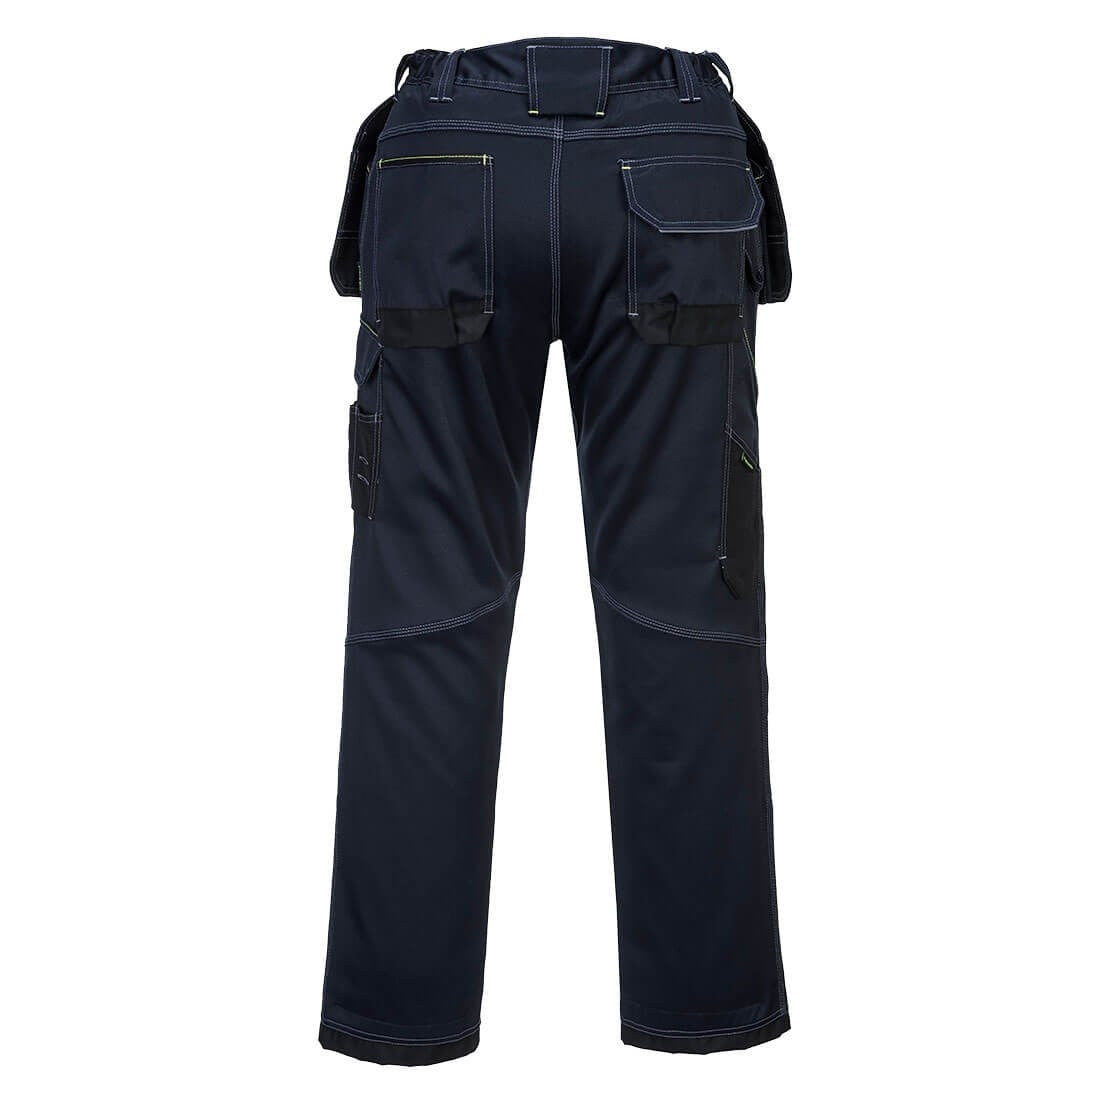 T602 PW3 Holster Work Pants